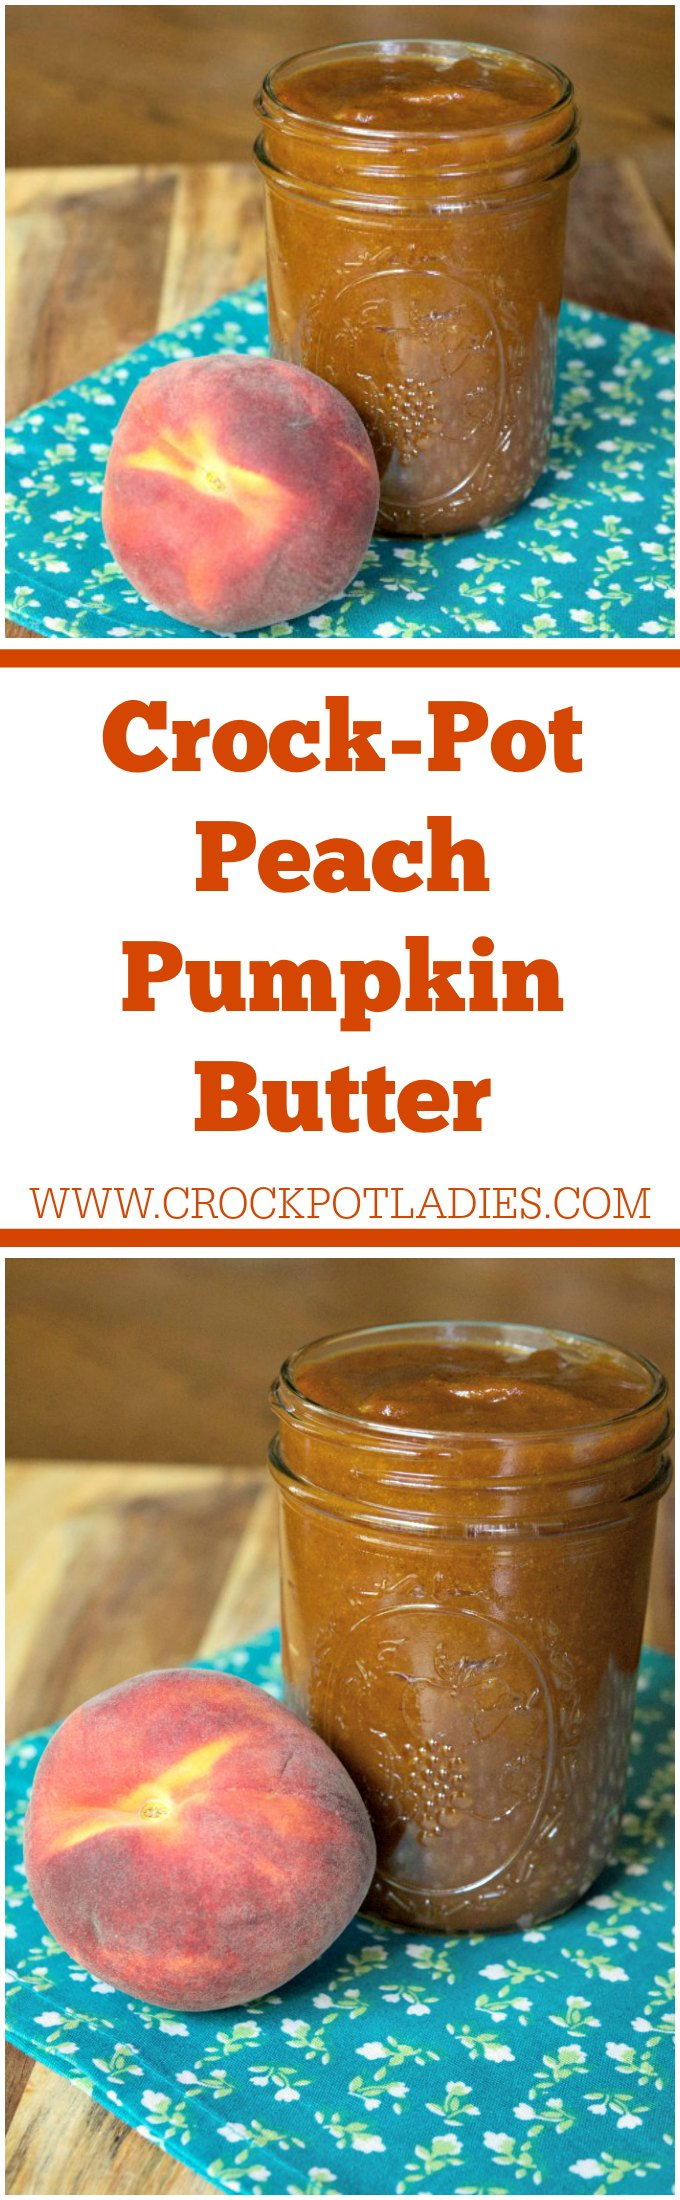 Crock-Pot Peach Pumpkin Butter